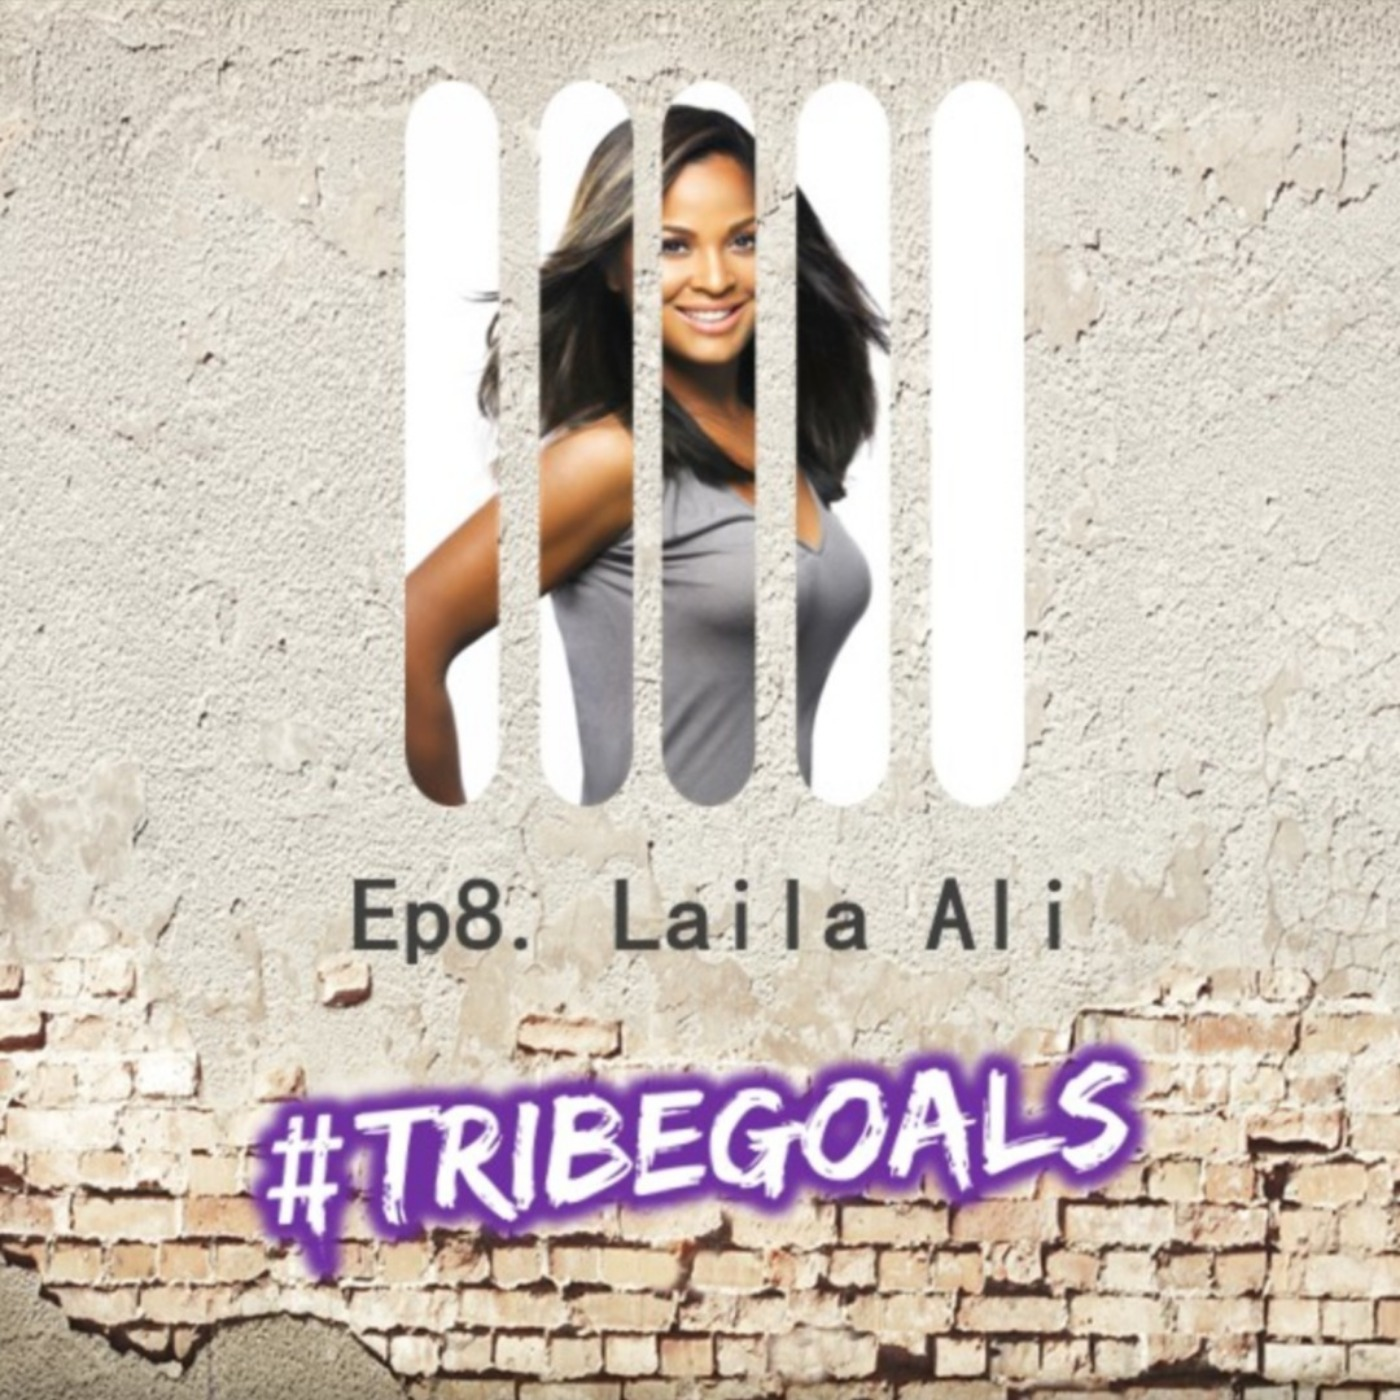 S1. Ep 8. | #TRIBEGOALS with Laila Ali